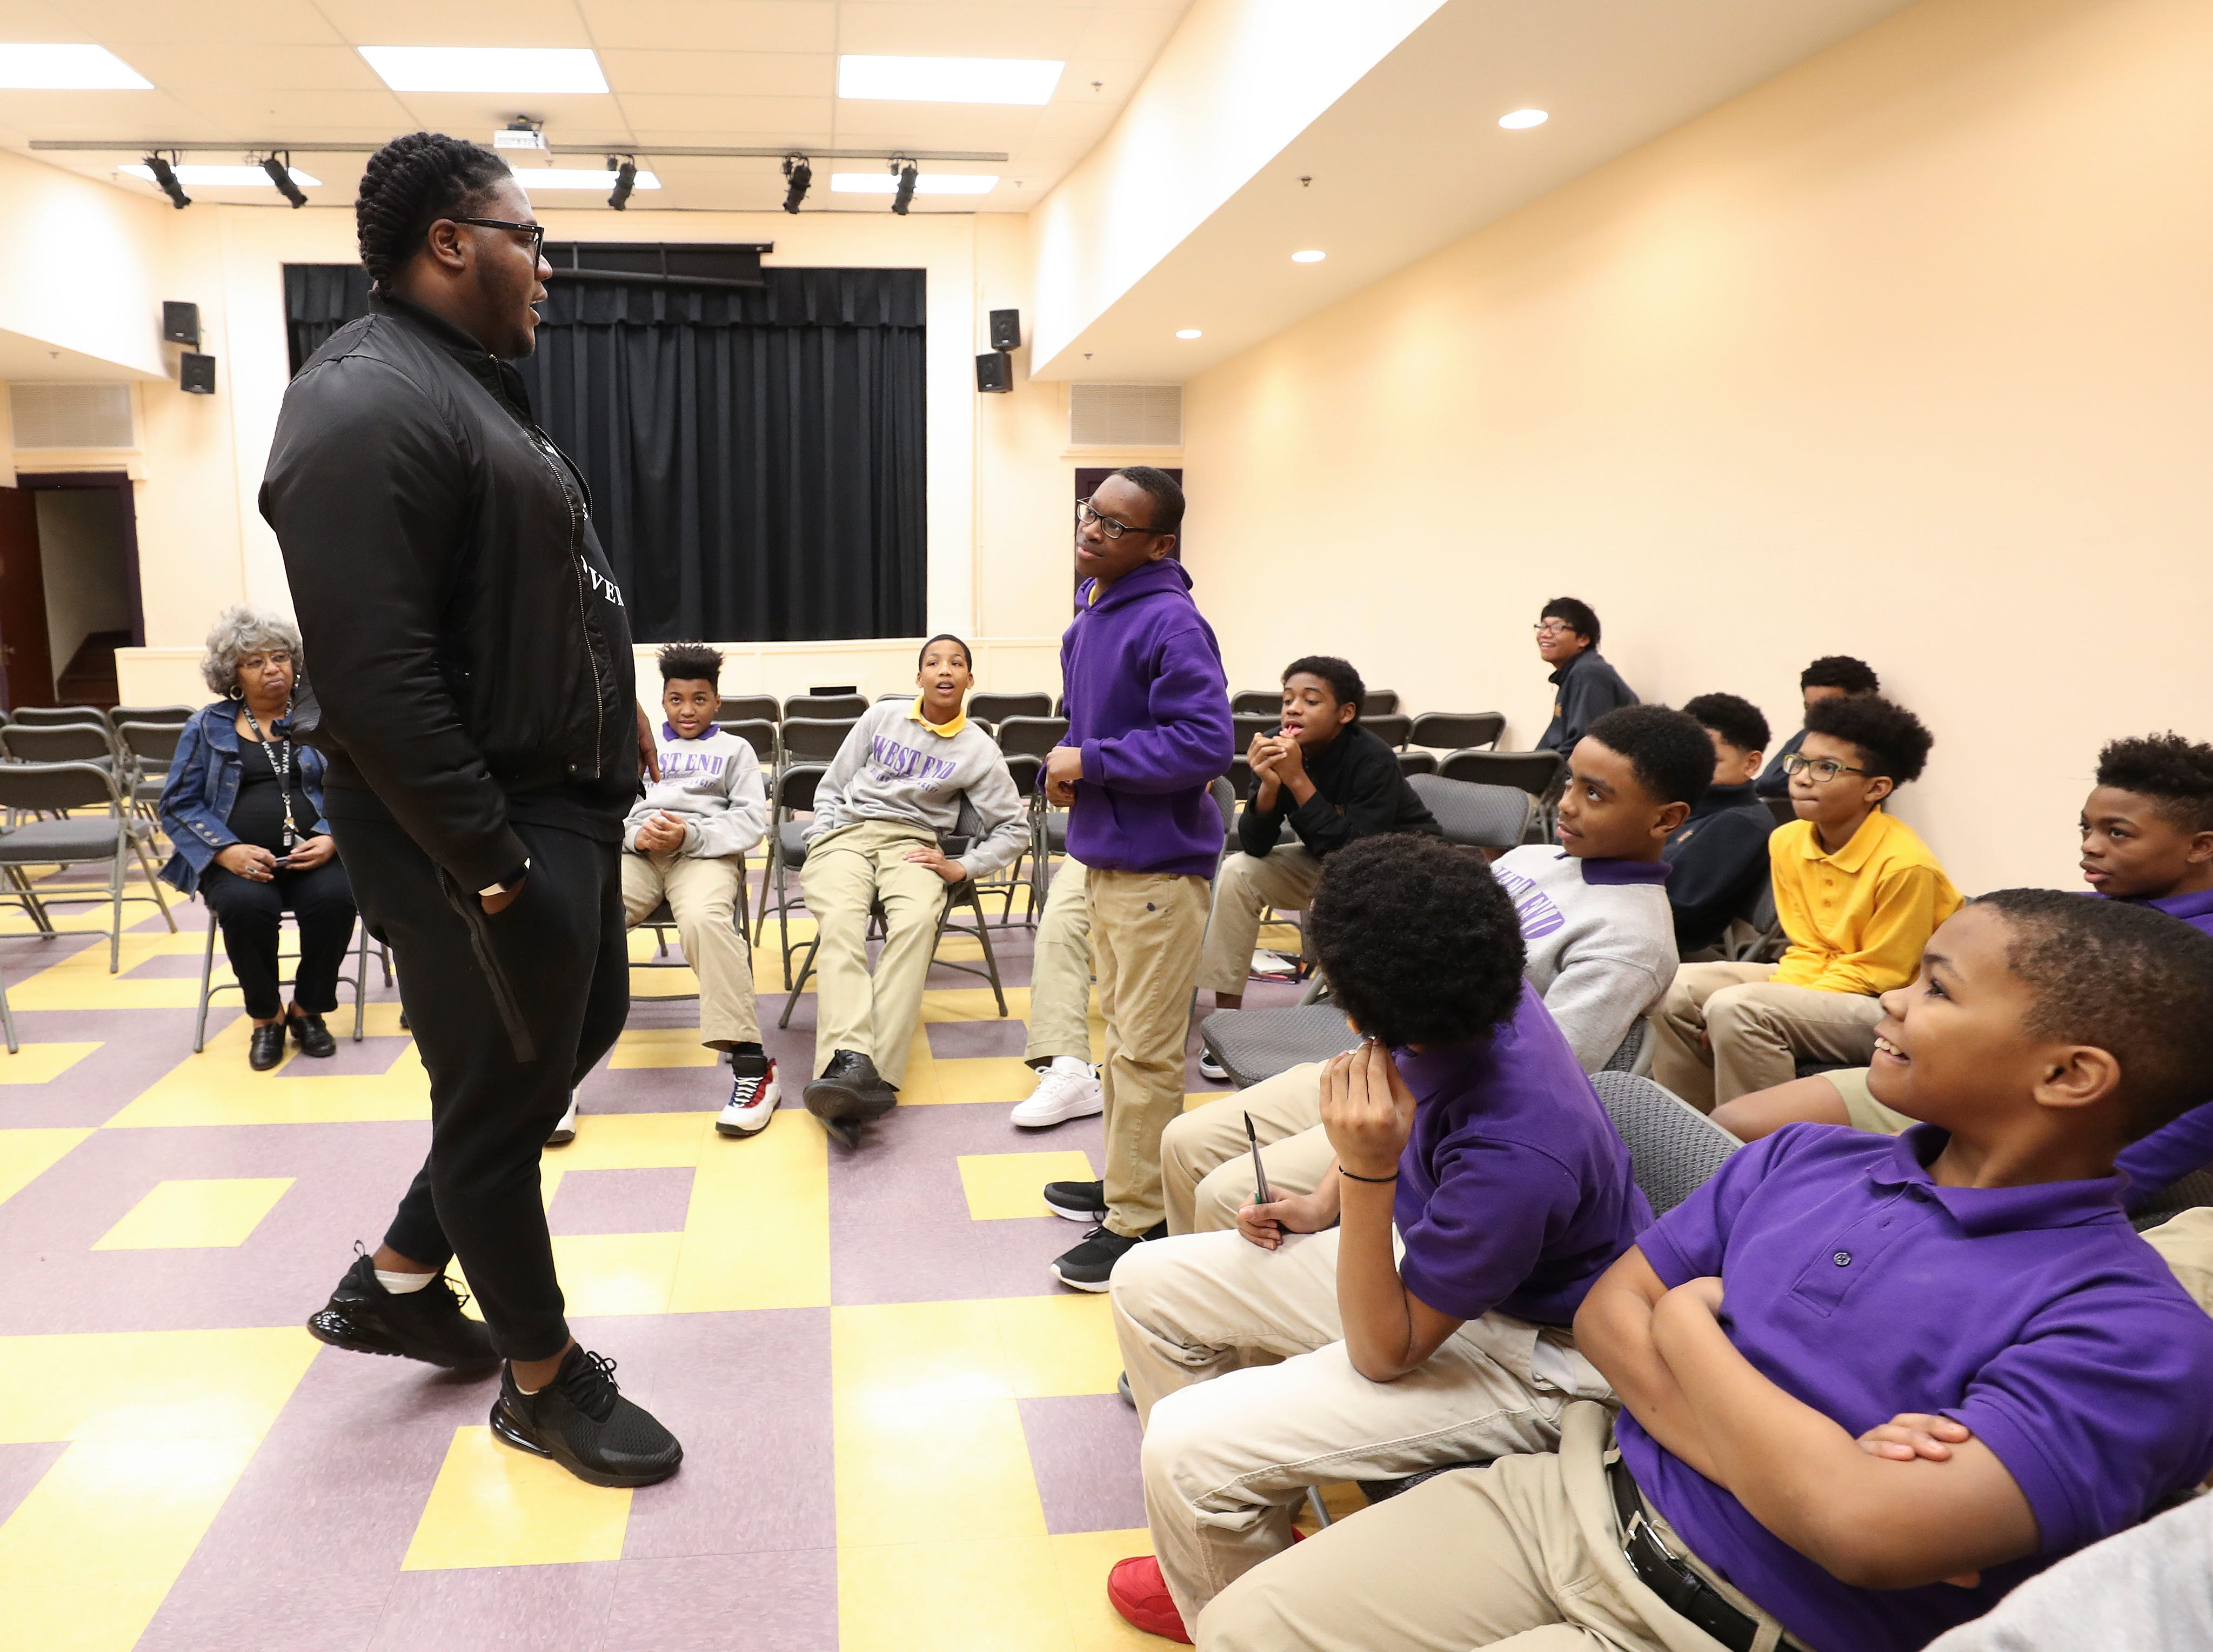 Jamon Brown, left, a former U of L football player who is in the NFL now, spoke to a group of students at the West End School about ways to prevent bullying.  He plays right guard for the New York Giants.Feb. 11, 2019